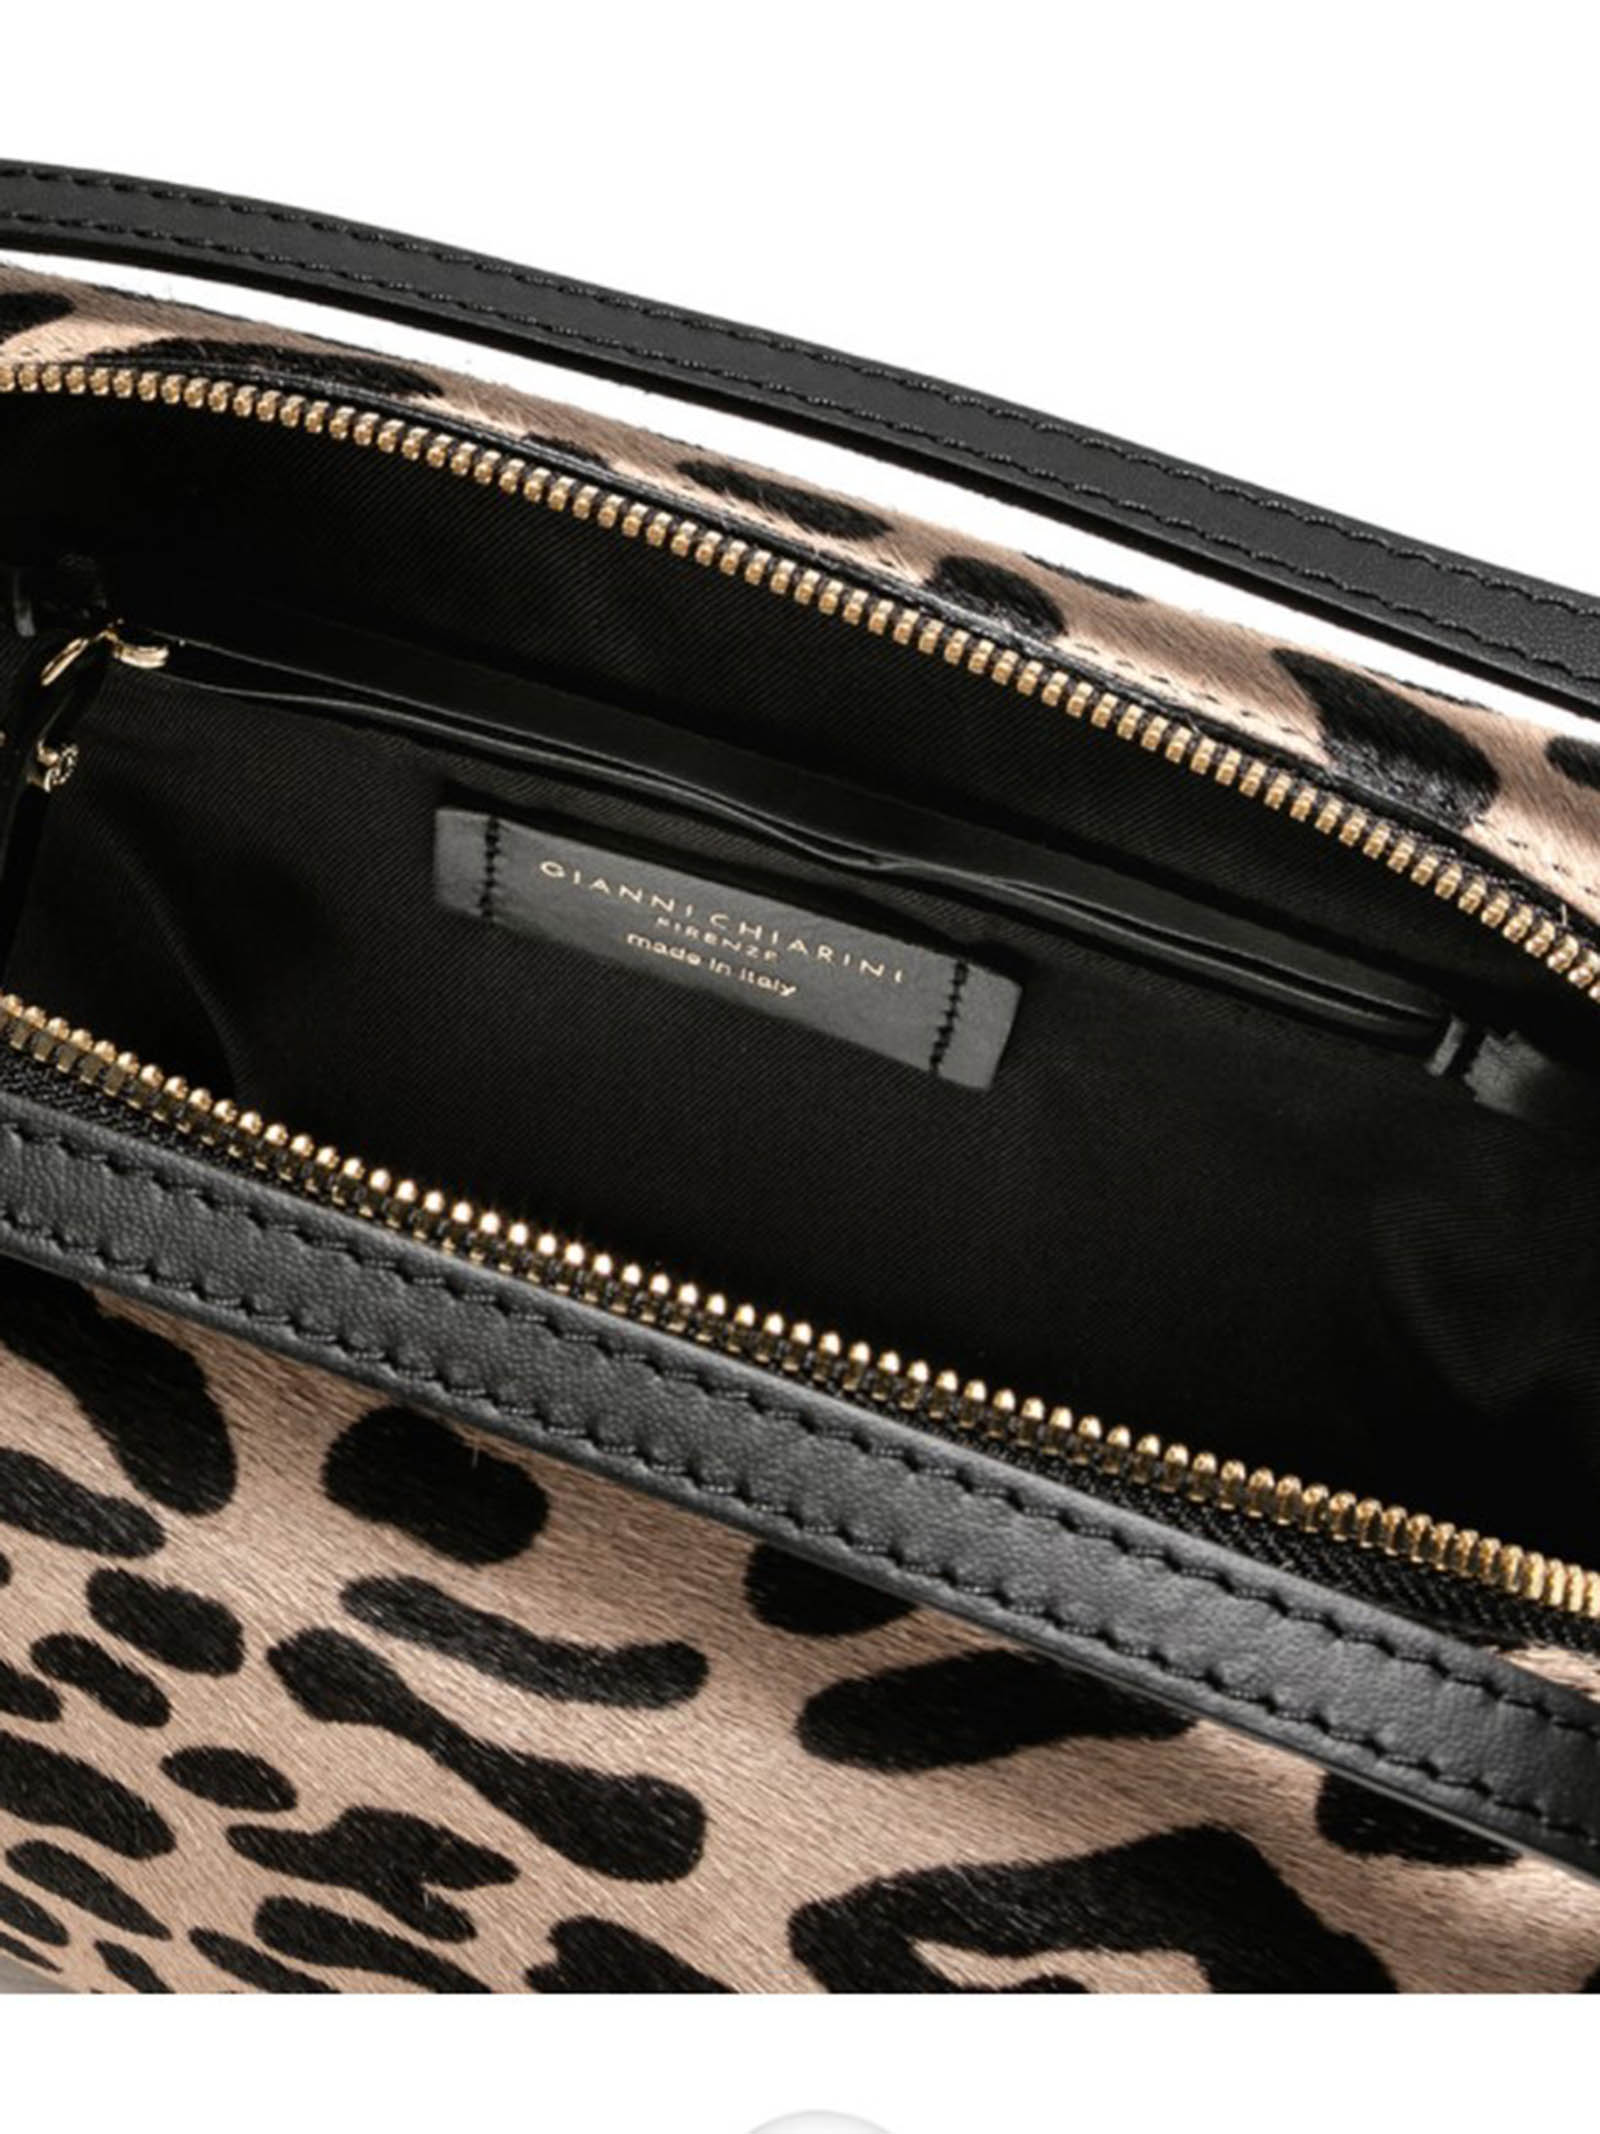 Women's Bag Maxi Alifa Handbag In Spotted Pony Skin And Black Leather With Double Handles and Detachable Leather Cross-body Strap Tone-on-tone Gianni Chiarini | Bags and backpacks | BS814810730